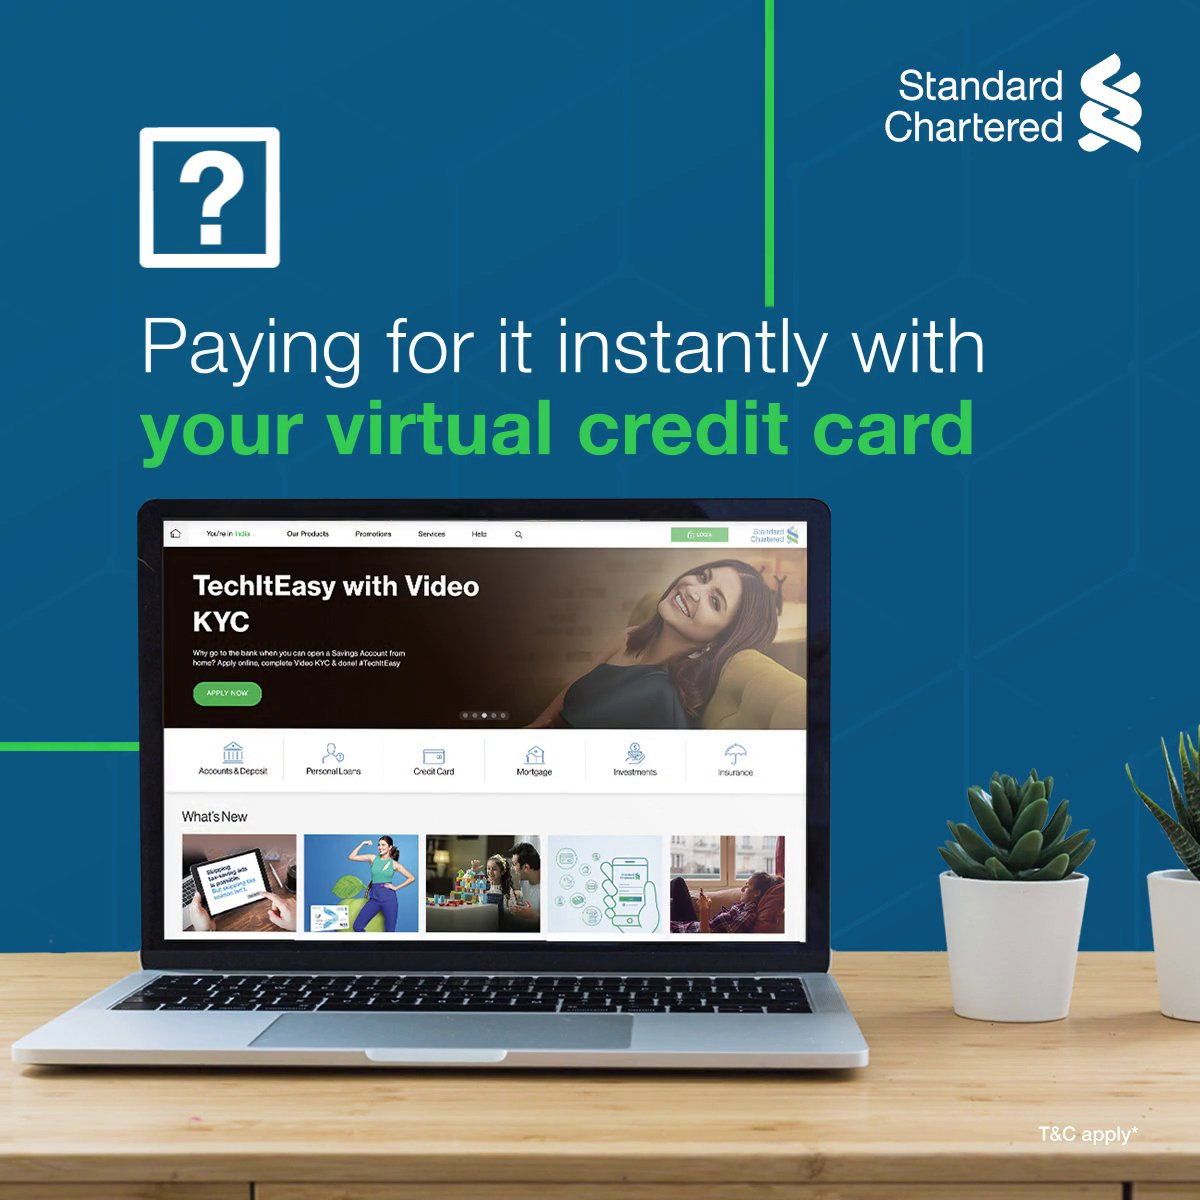 We know you can do everything from your couch. Add applying for a credit card to that list too! #TechItEasy when you apply for a Virtual Credit Card.  ✅Fill the online form ✅Verify your documents with a Video KYC ✅Get your card instantly!  To know more,